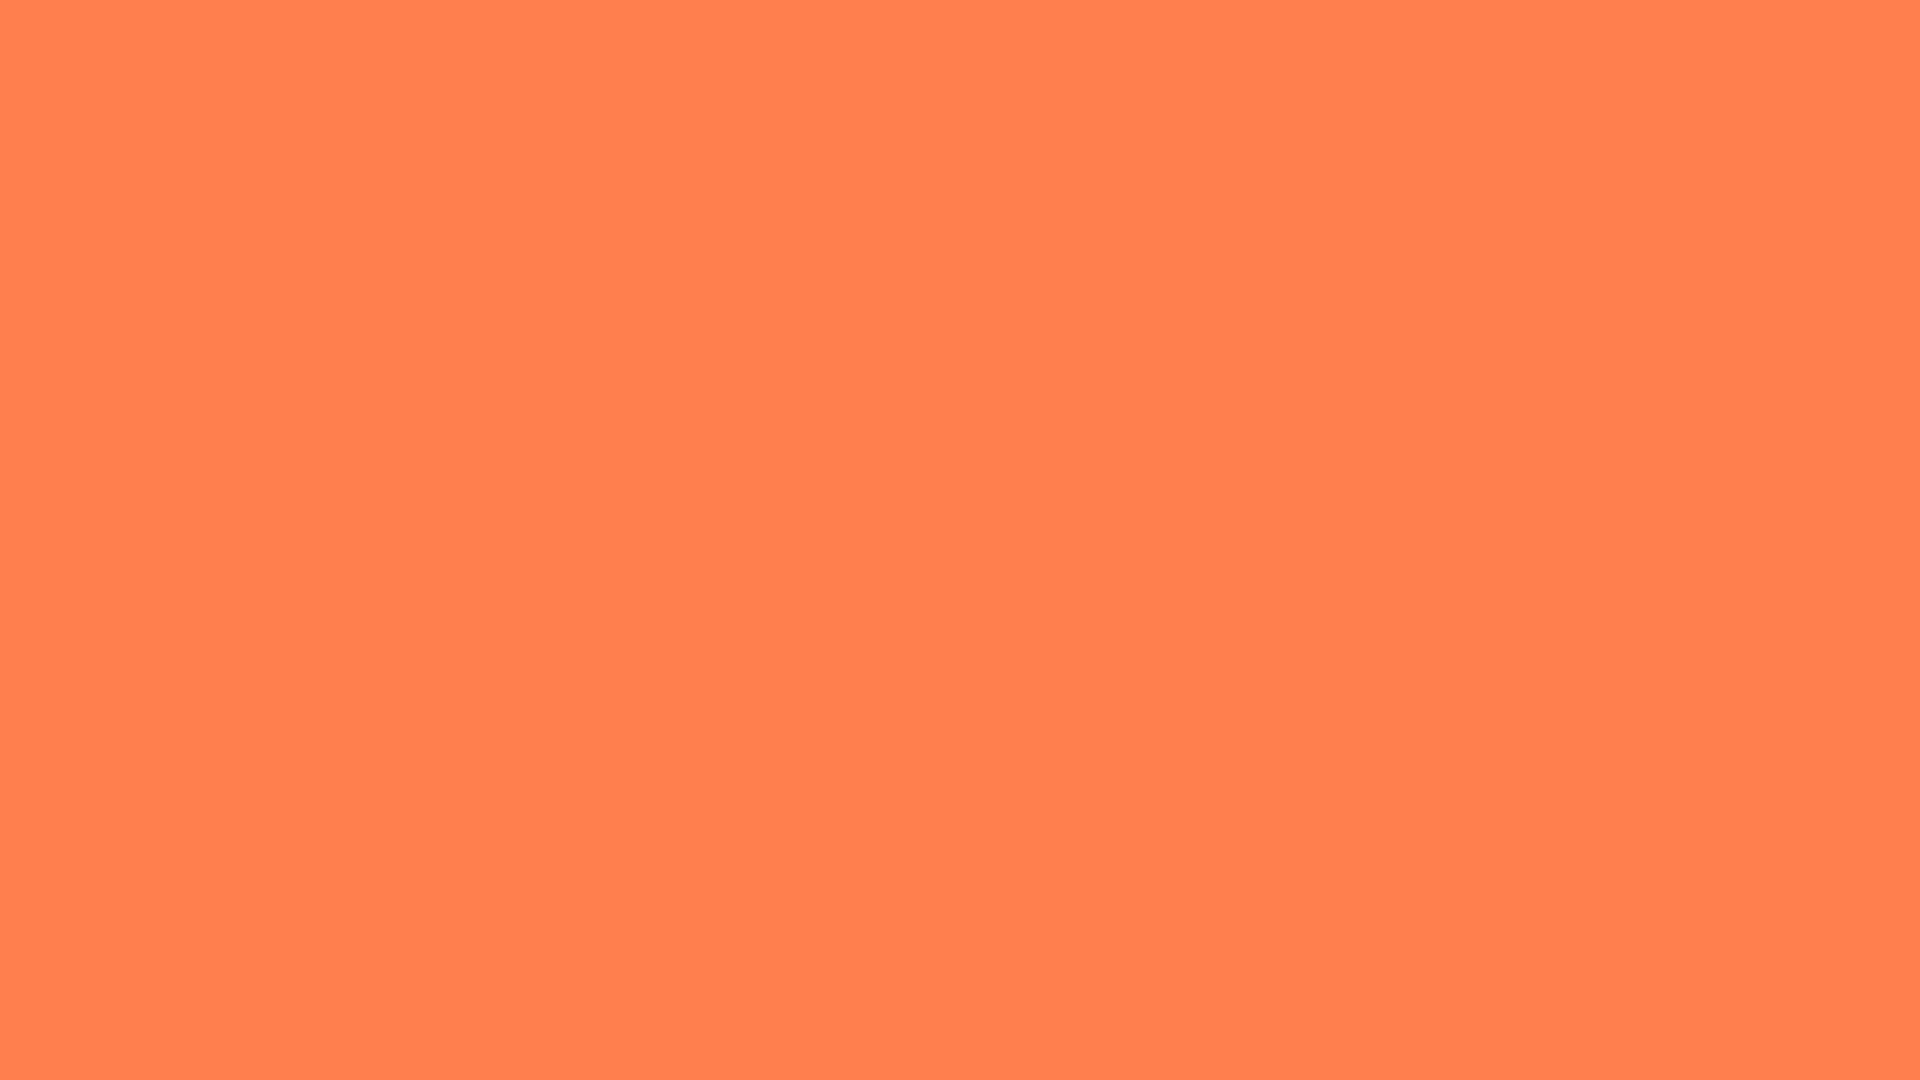 1920x1080 Coral Solid Color Background